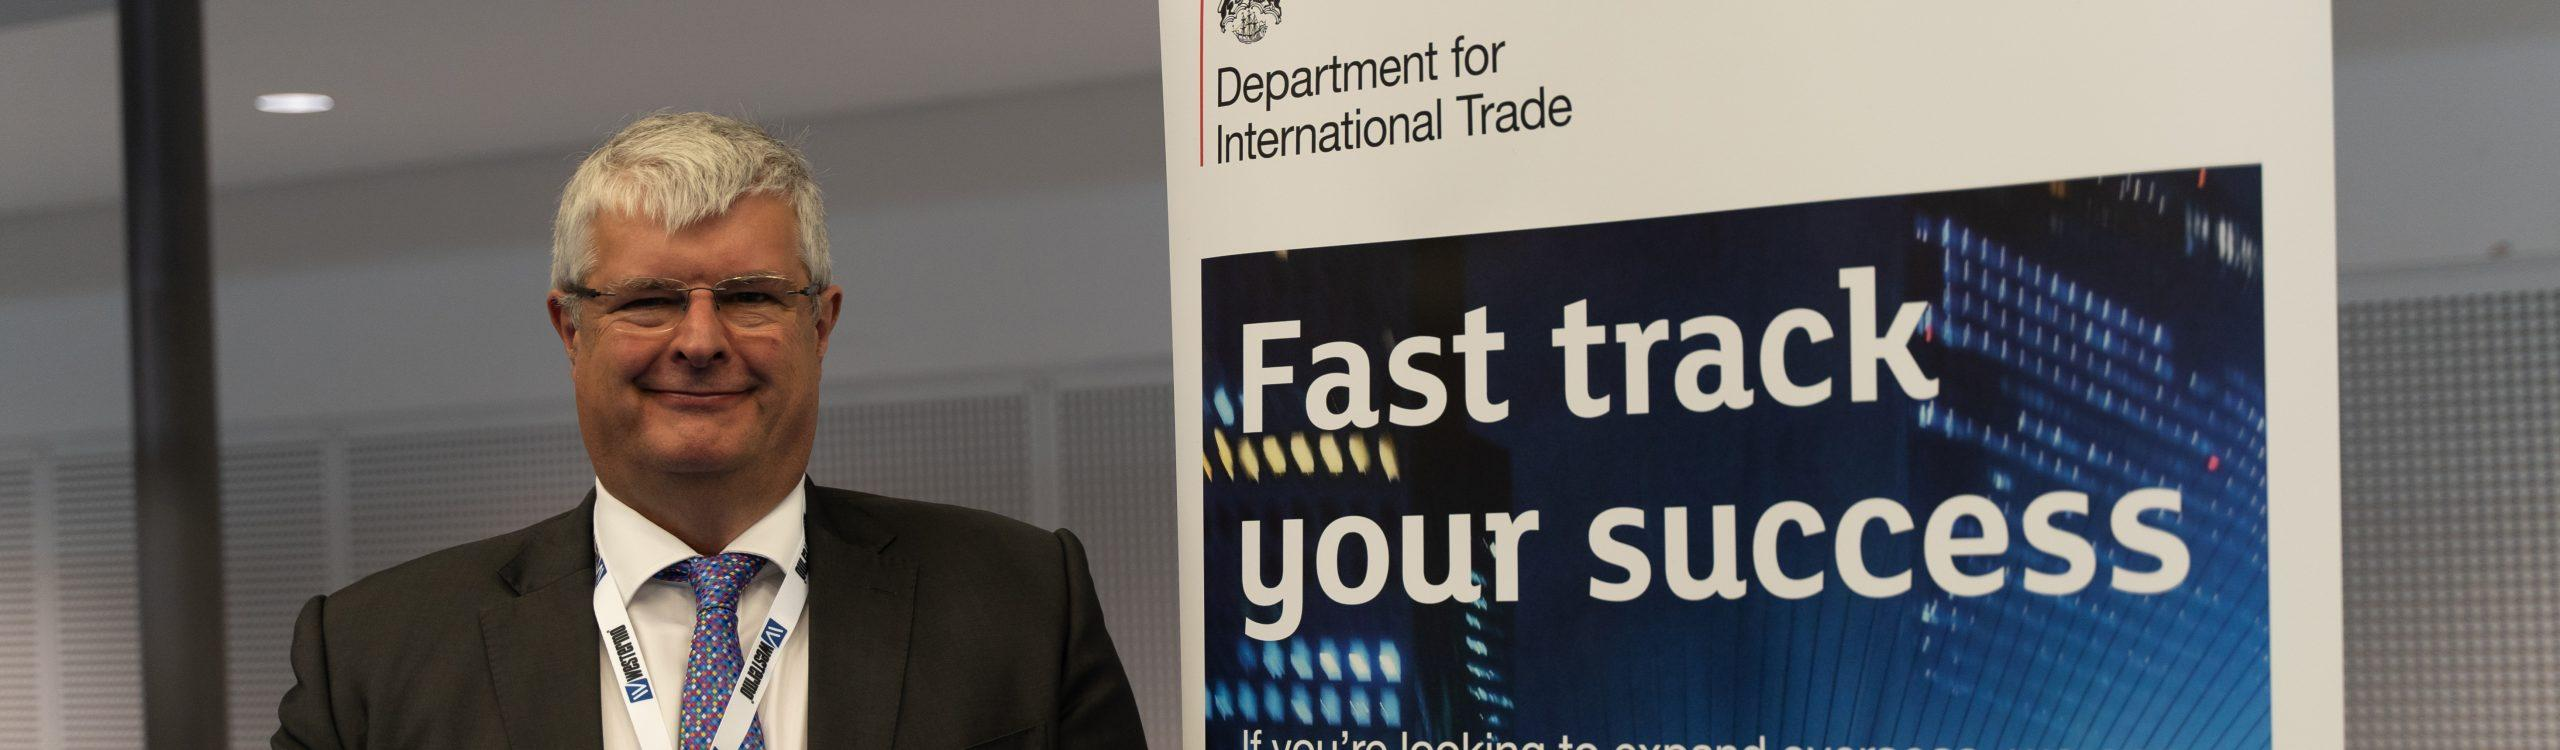 Department for International Trade Services at RSN 2020